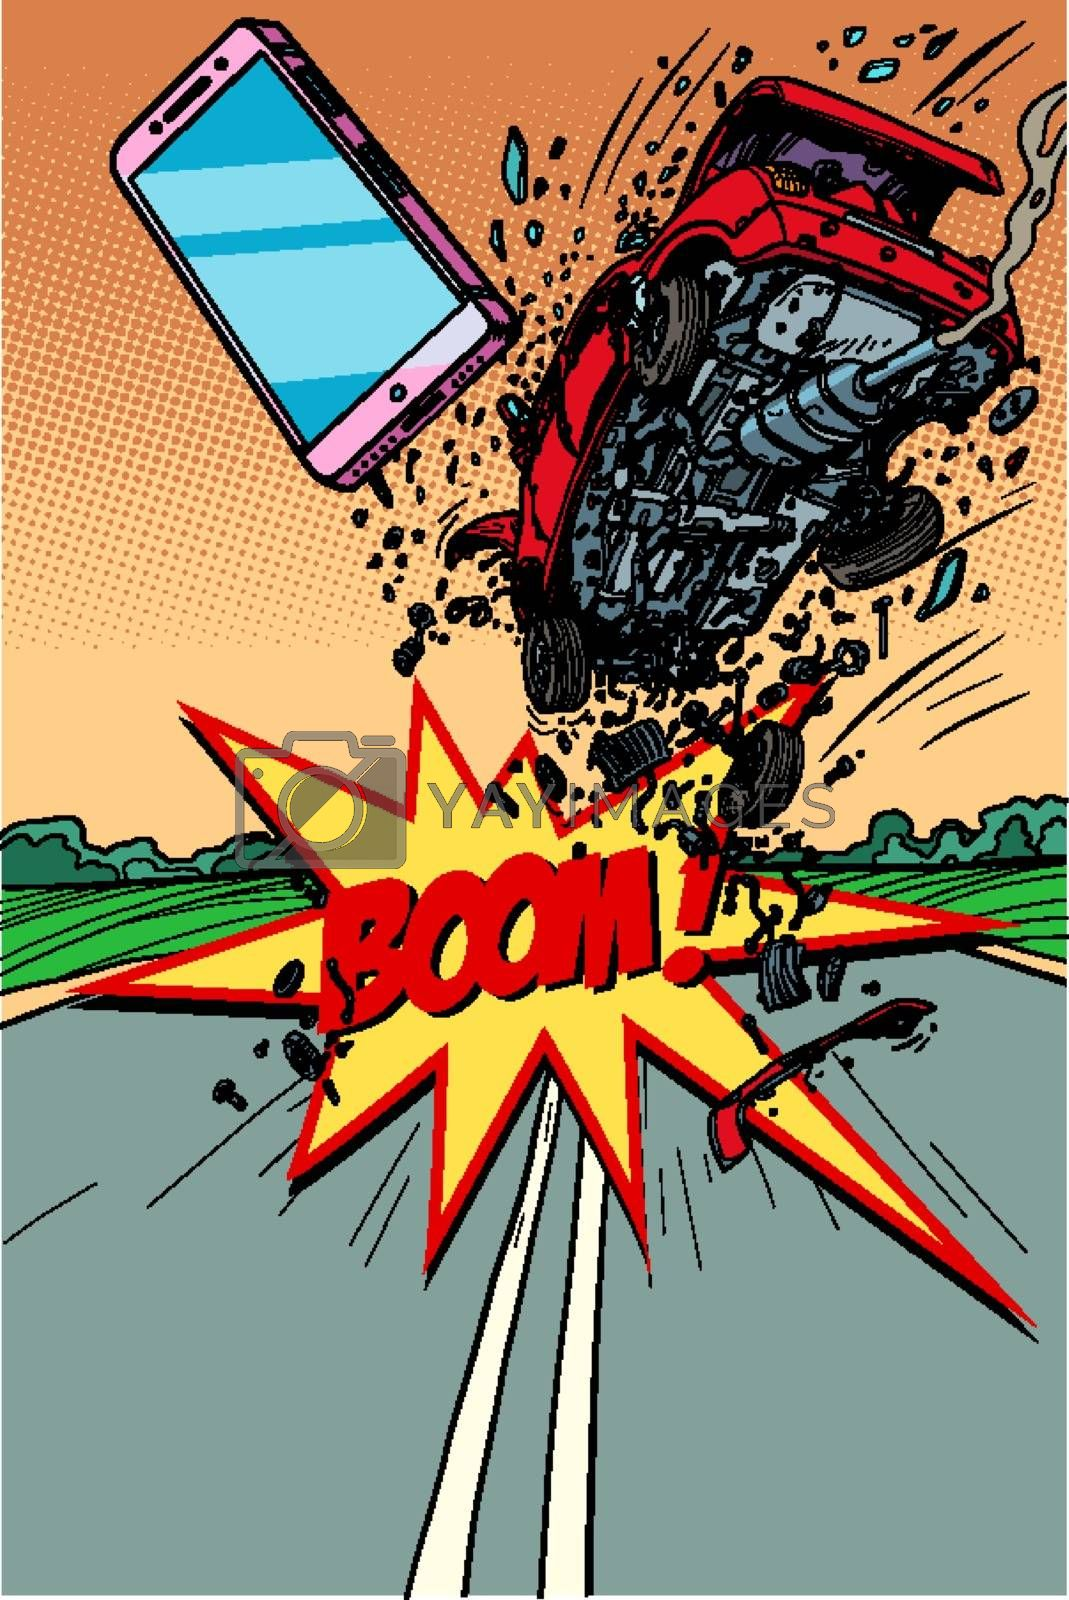 The driver was distracted by a smartphone and the car crashed. Comic cartoon pop art retro vector illustration drawing